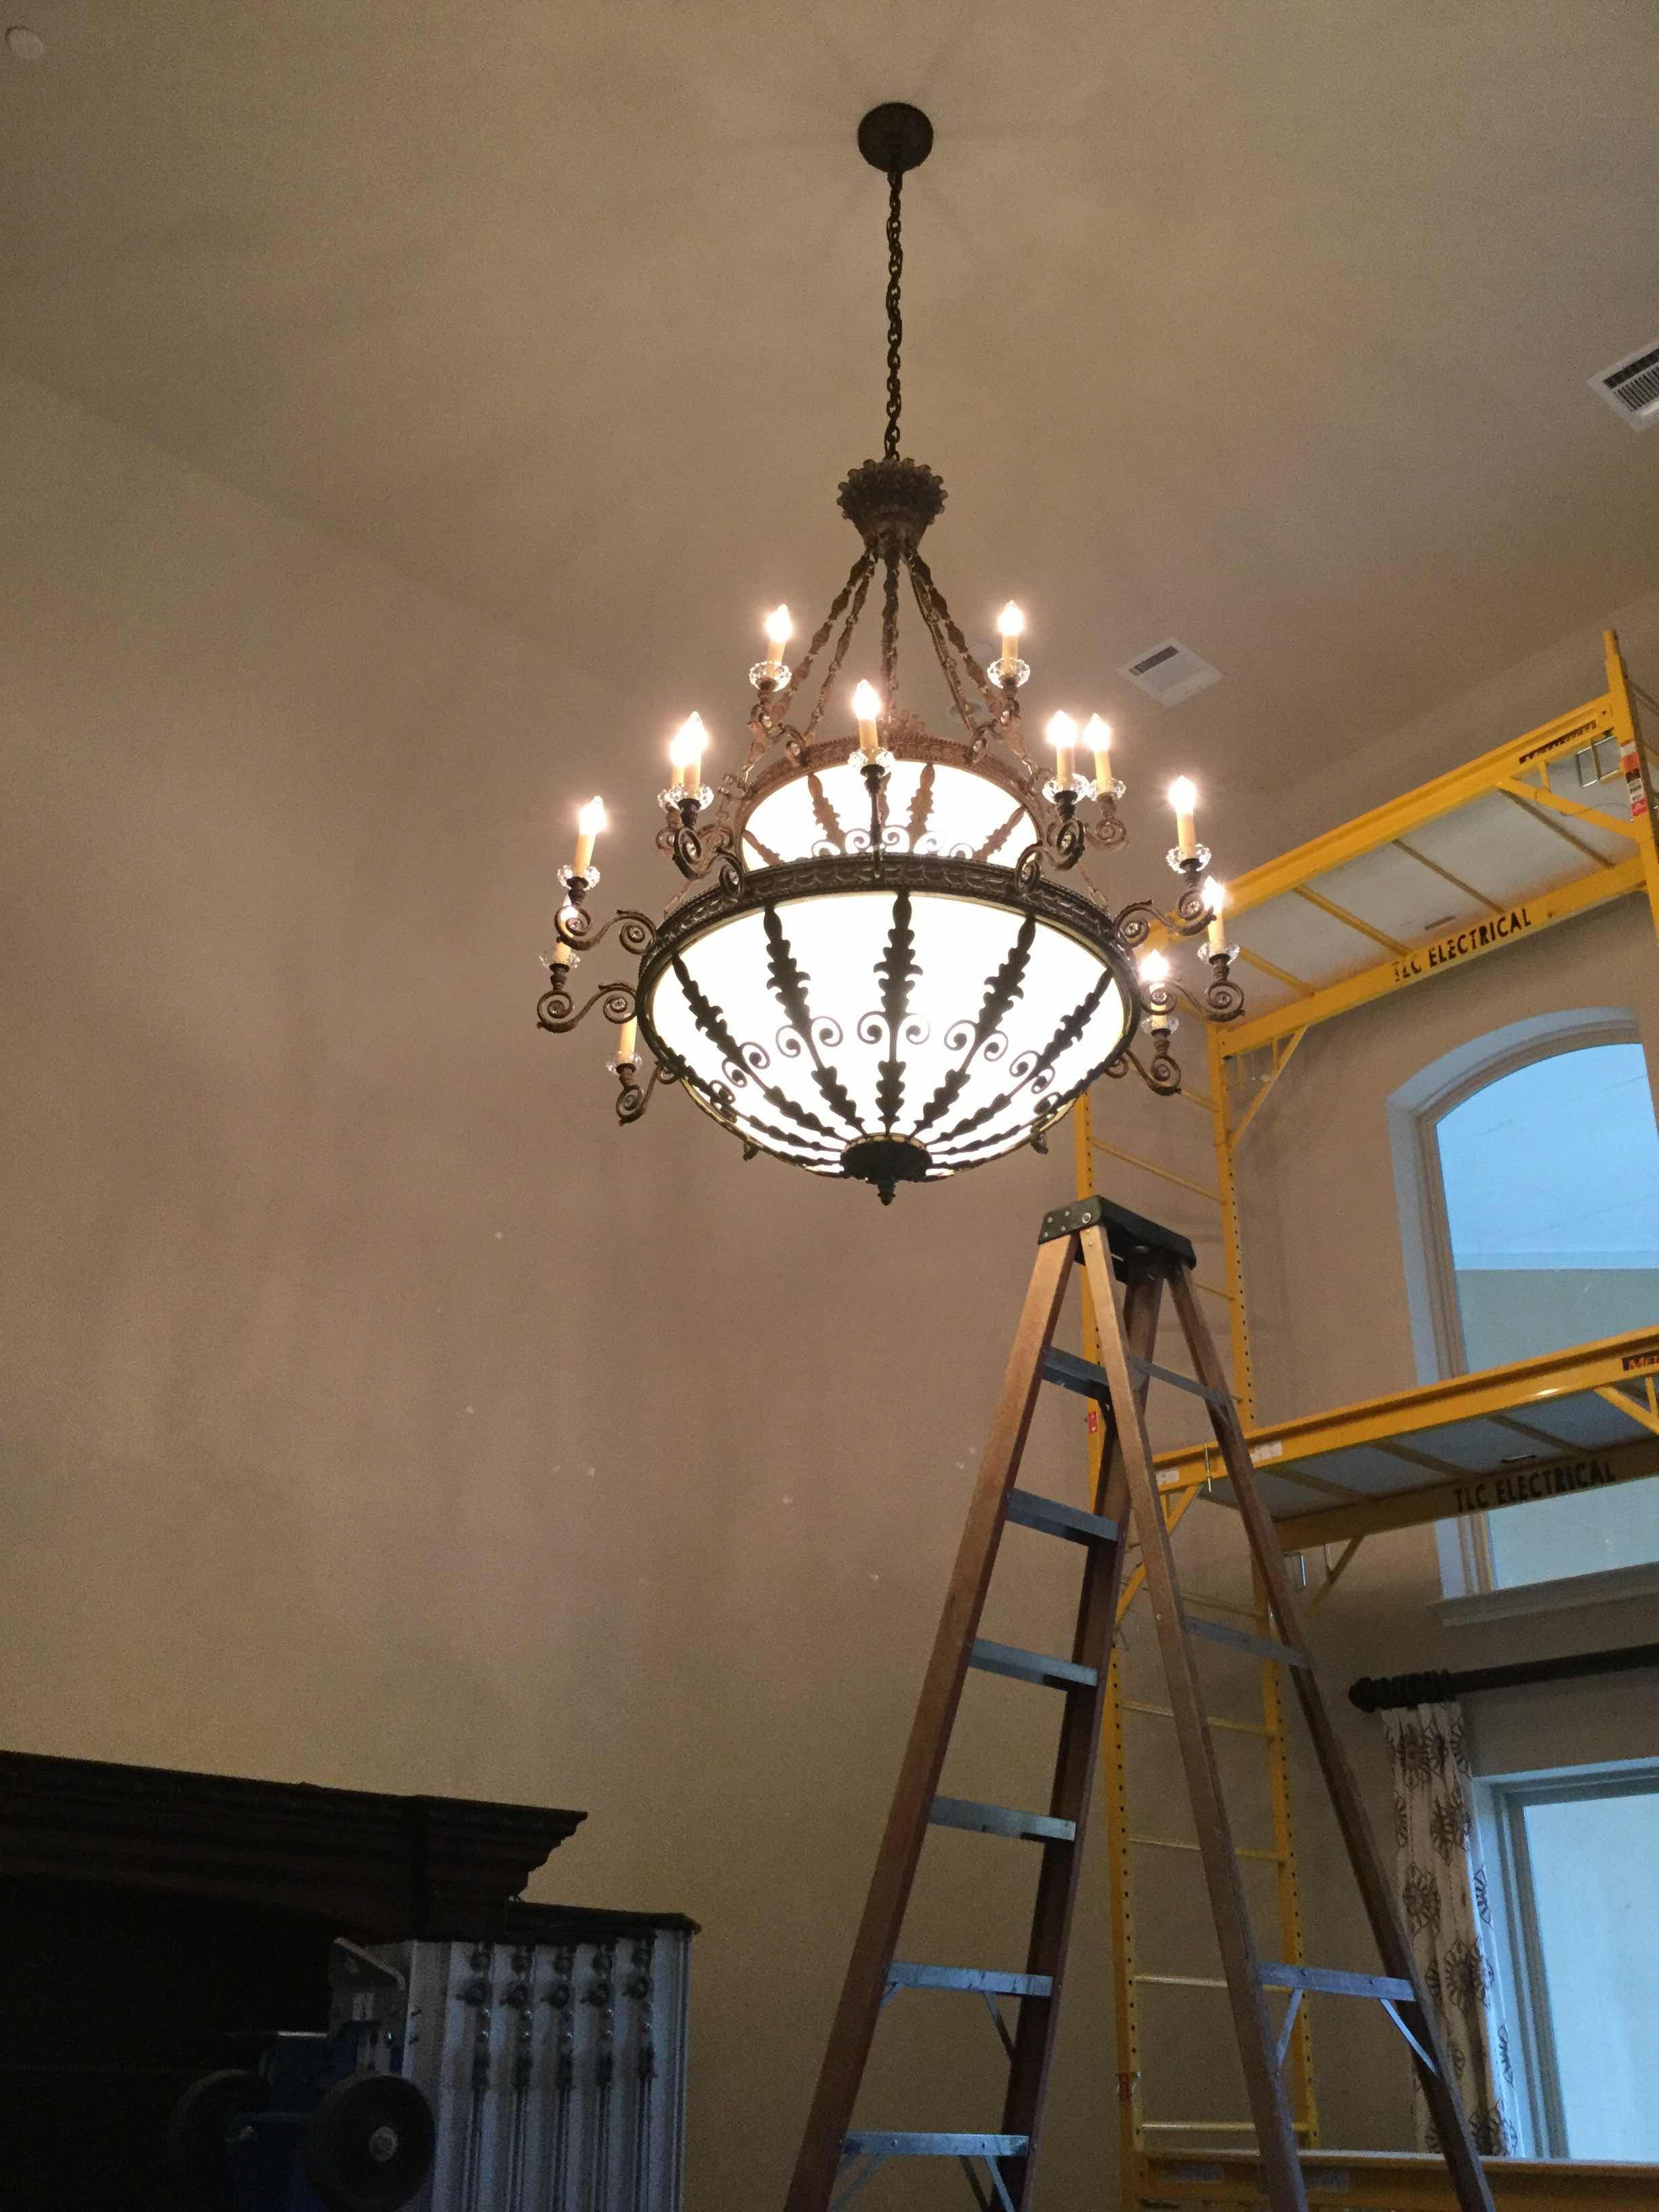 Expert Chandelier Installation Installations Performed On All Sizes And Ceiling Heights